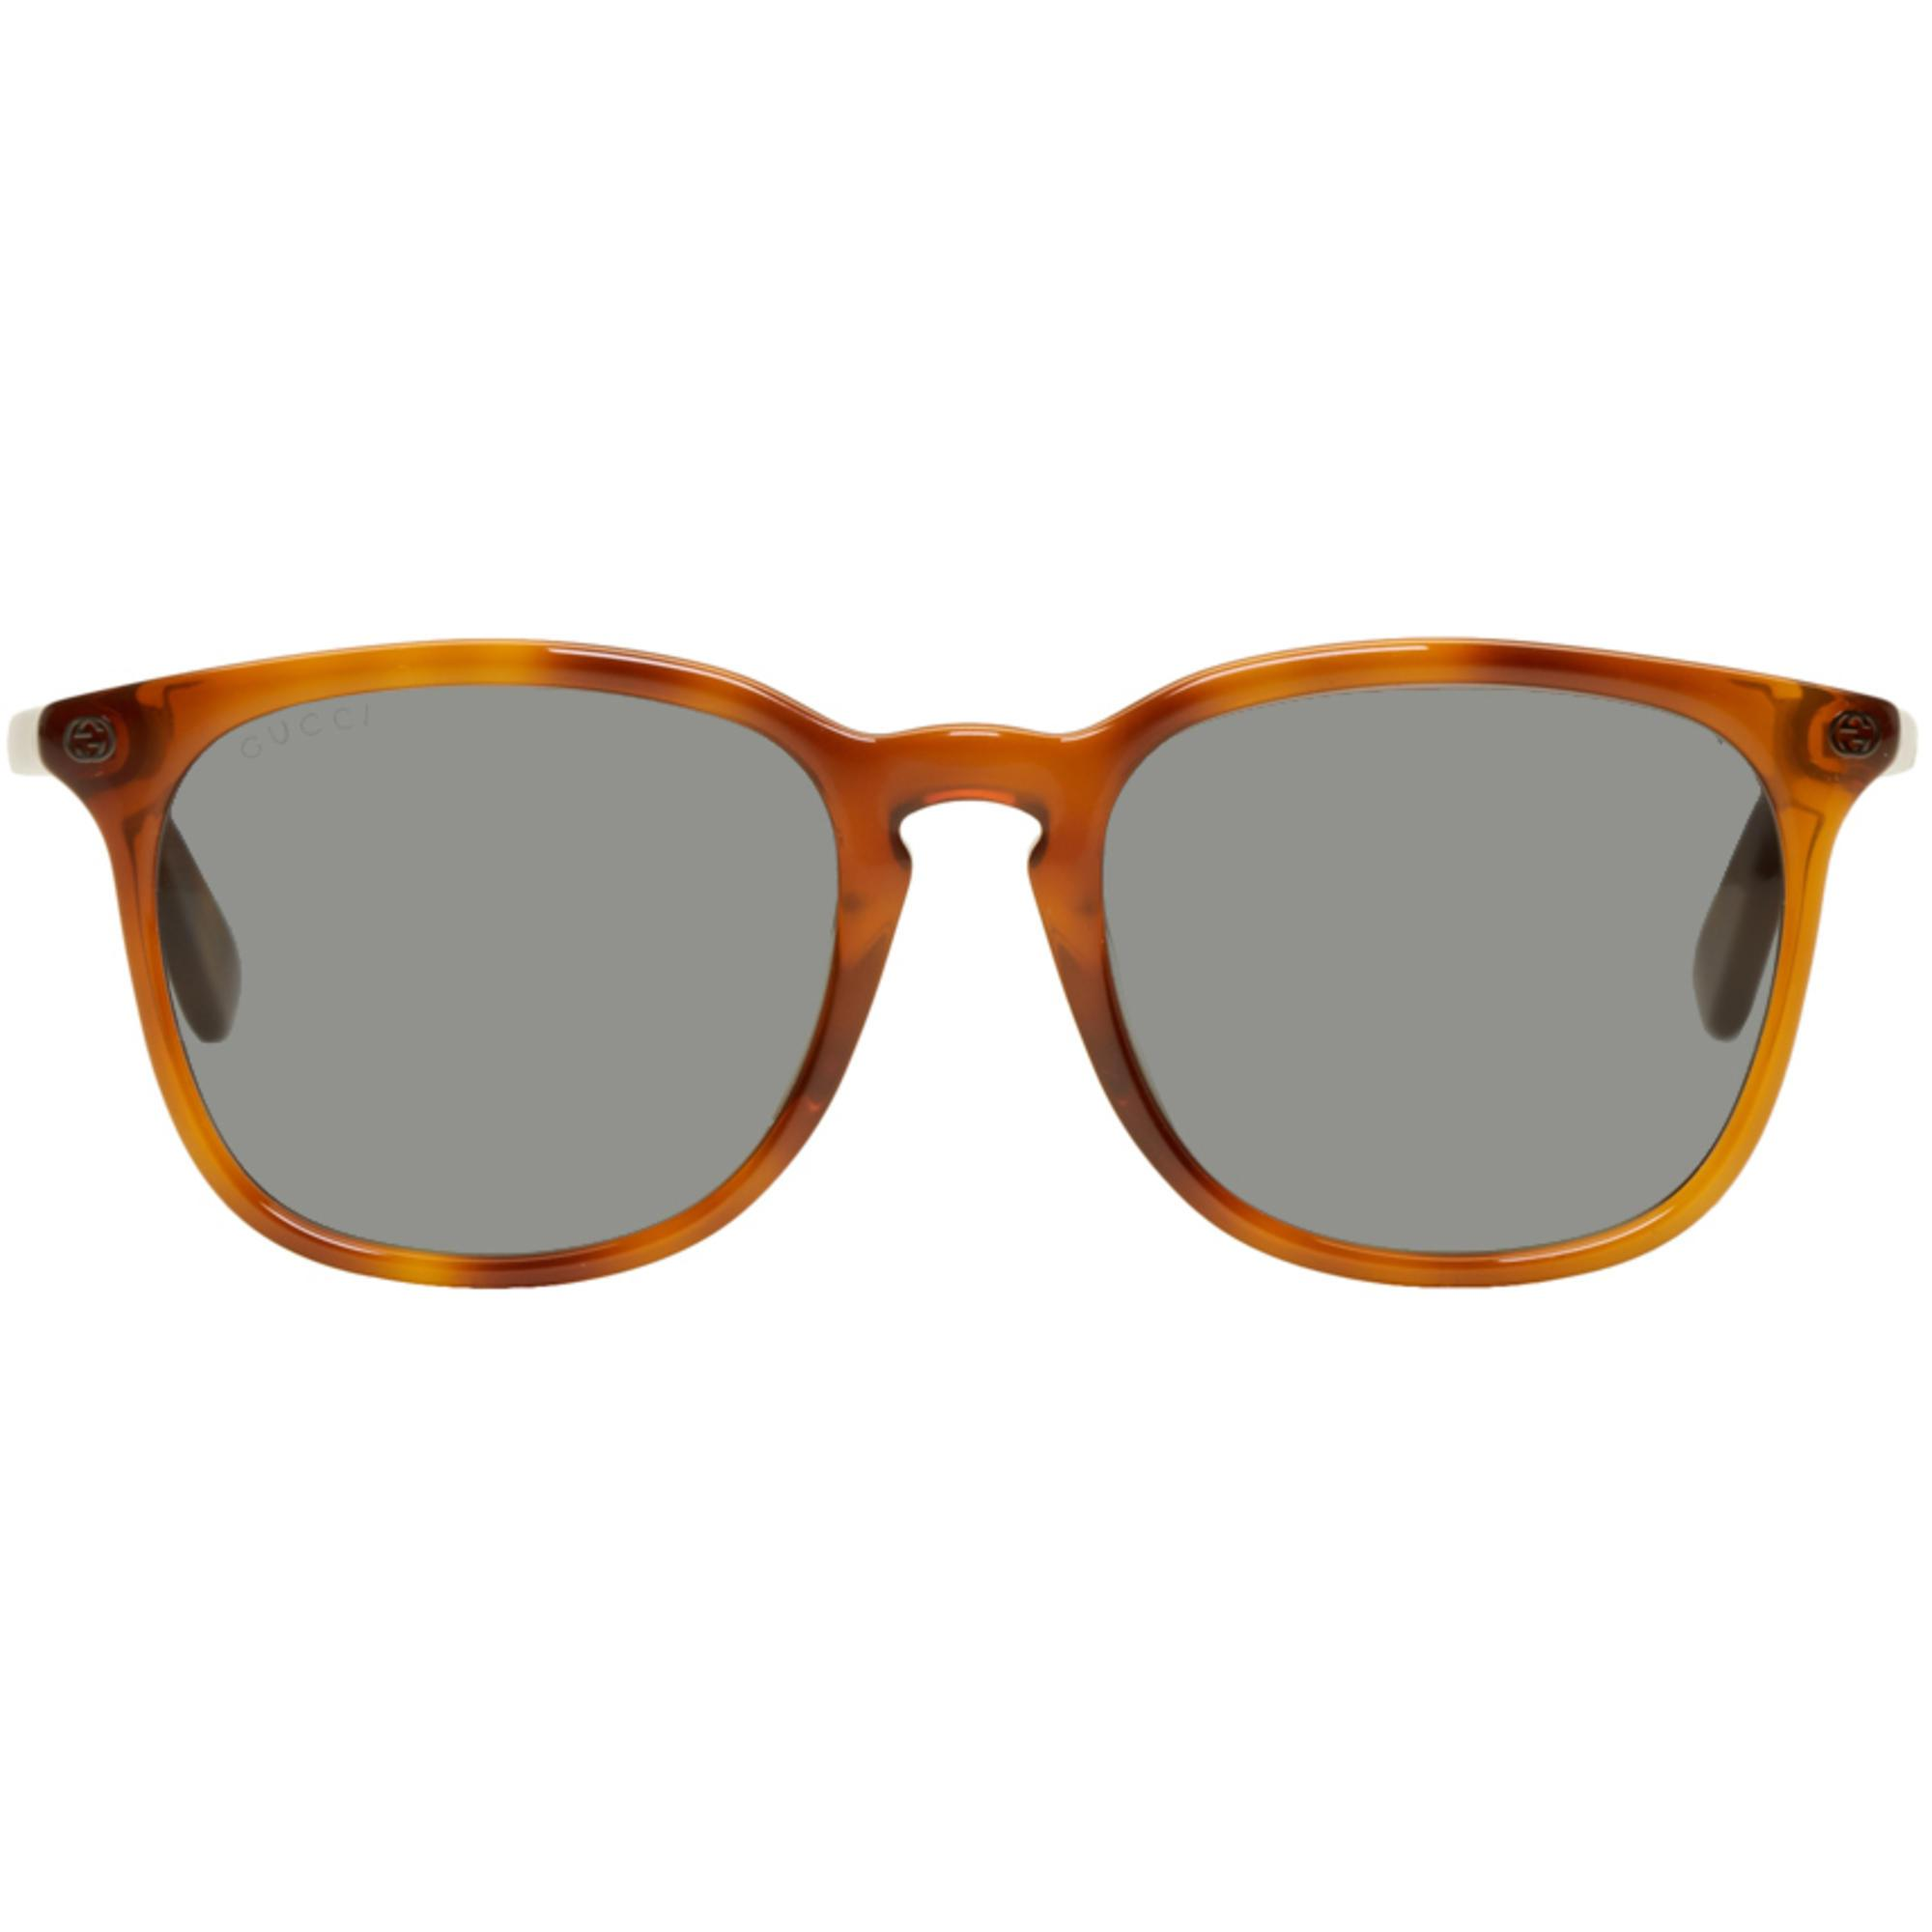 e43d7aa9fb6 Lyst - Gucci Tan Tortoiseshell Square Sunglasses in Brown for Men